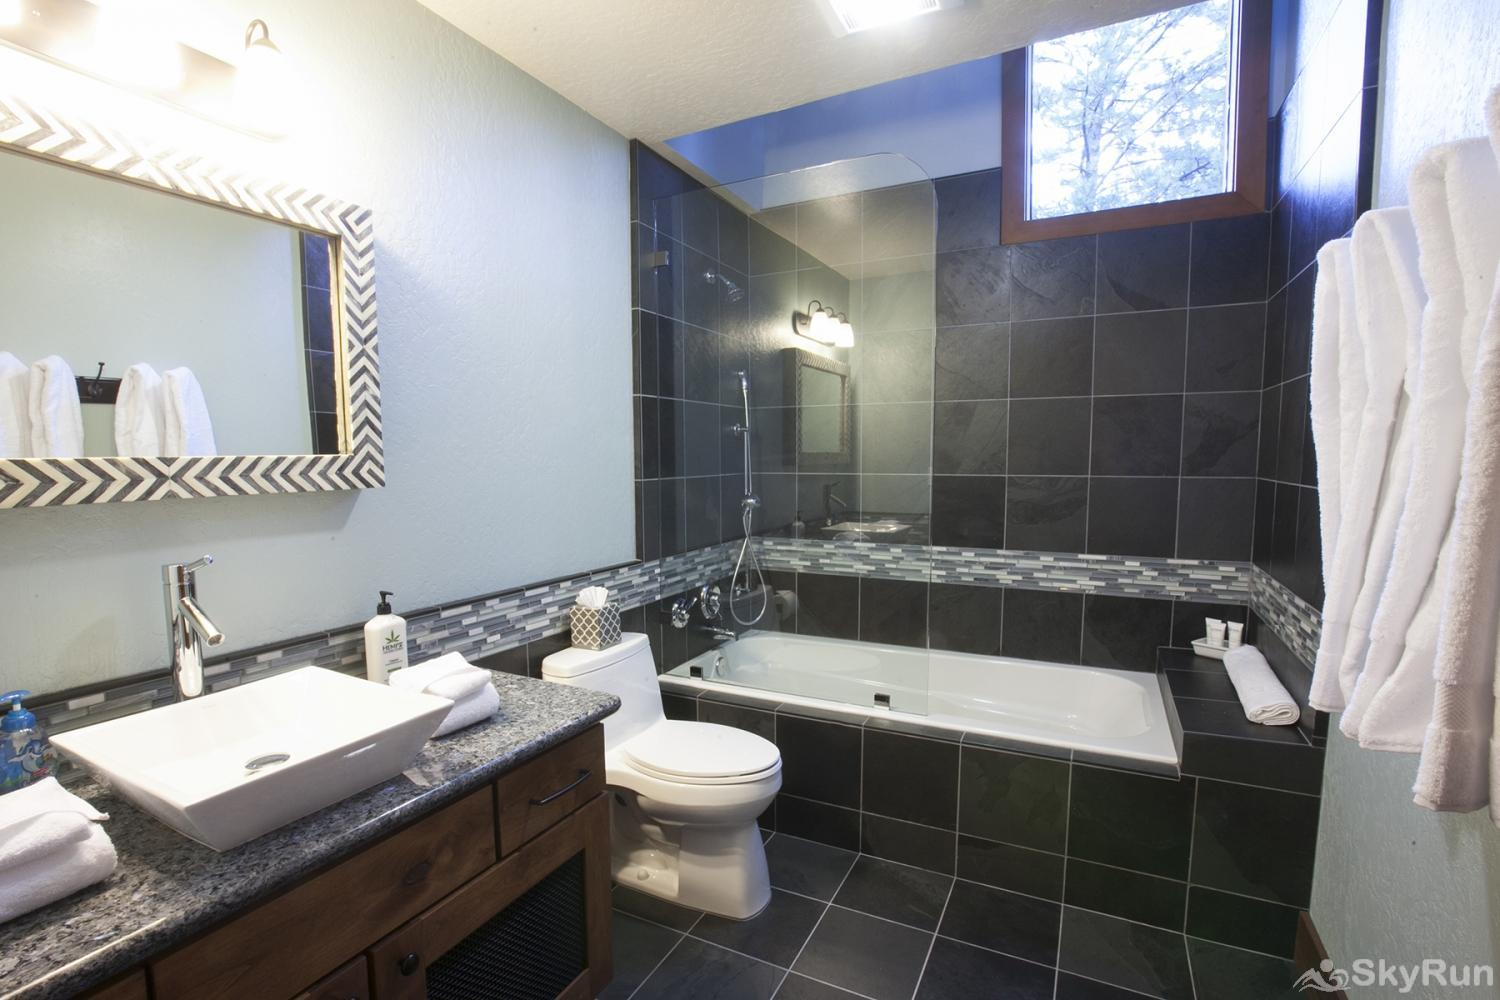 Lodgepole Northstar Luxury Home Guest Full Bathroom (upper level)